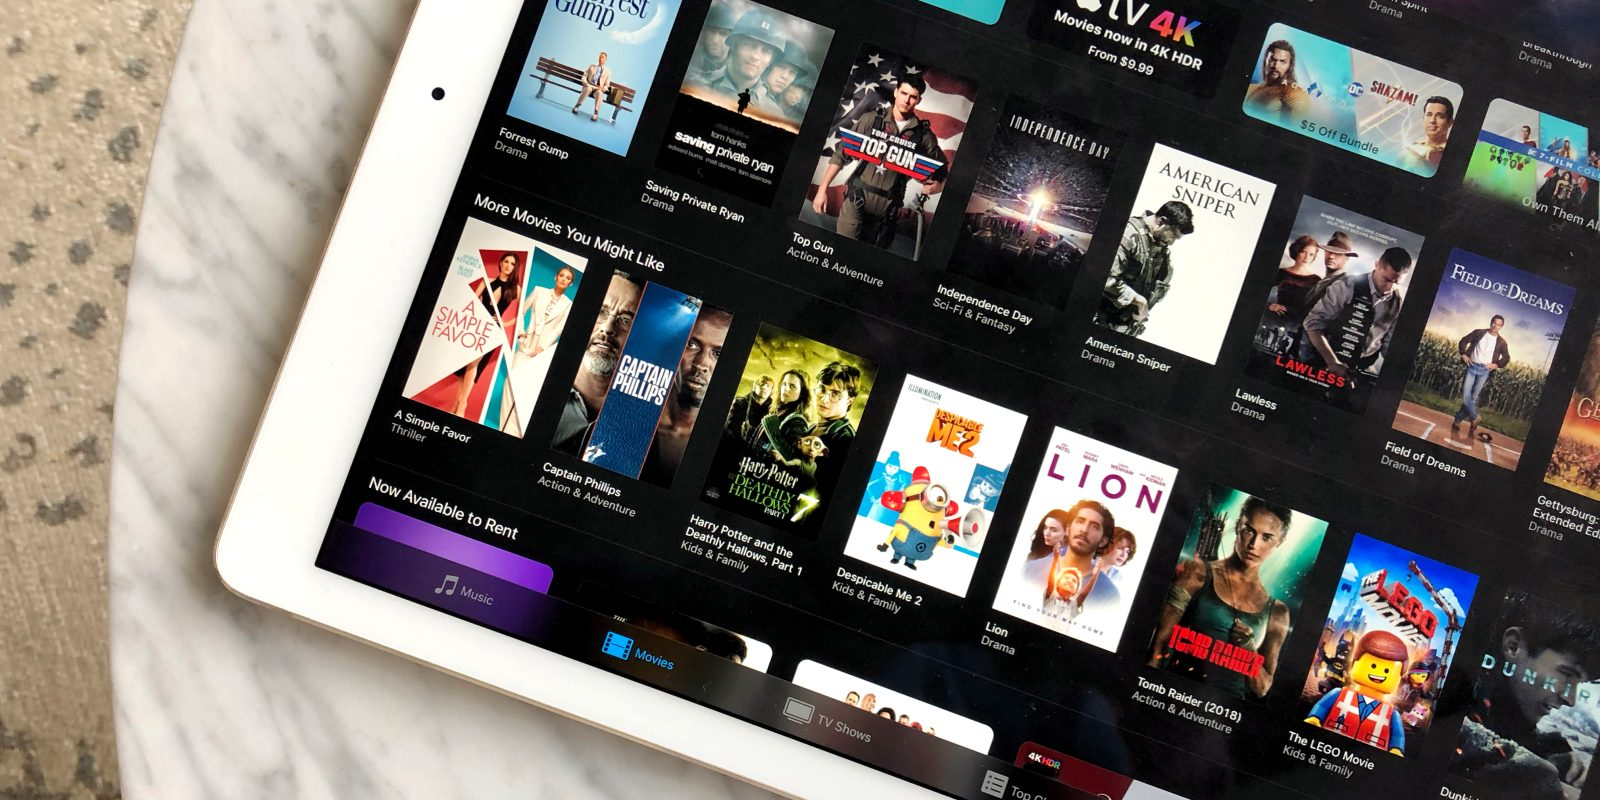 iTunes July 4th movie sale from $1: $5 films, '80s movies